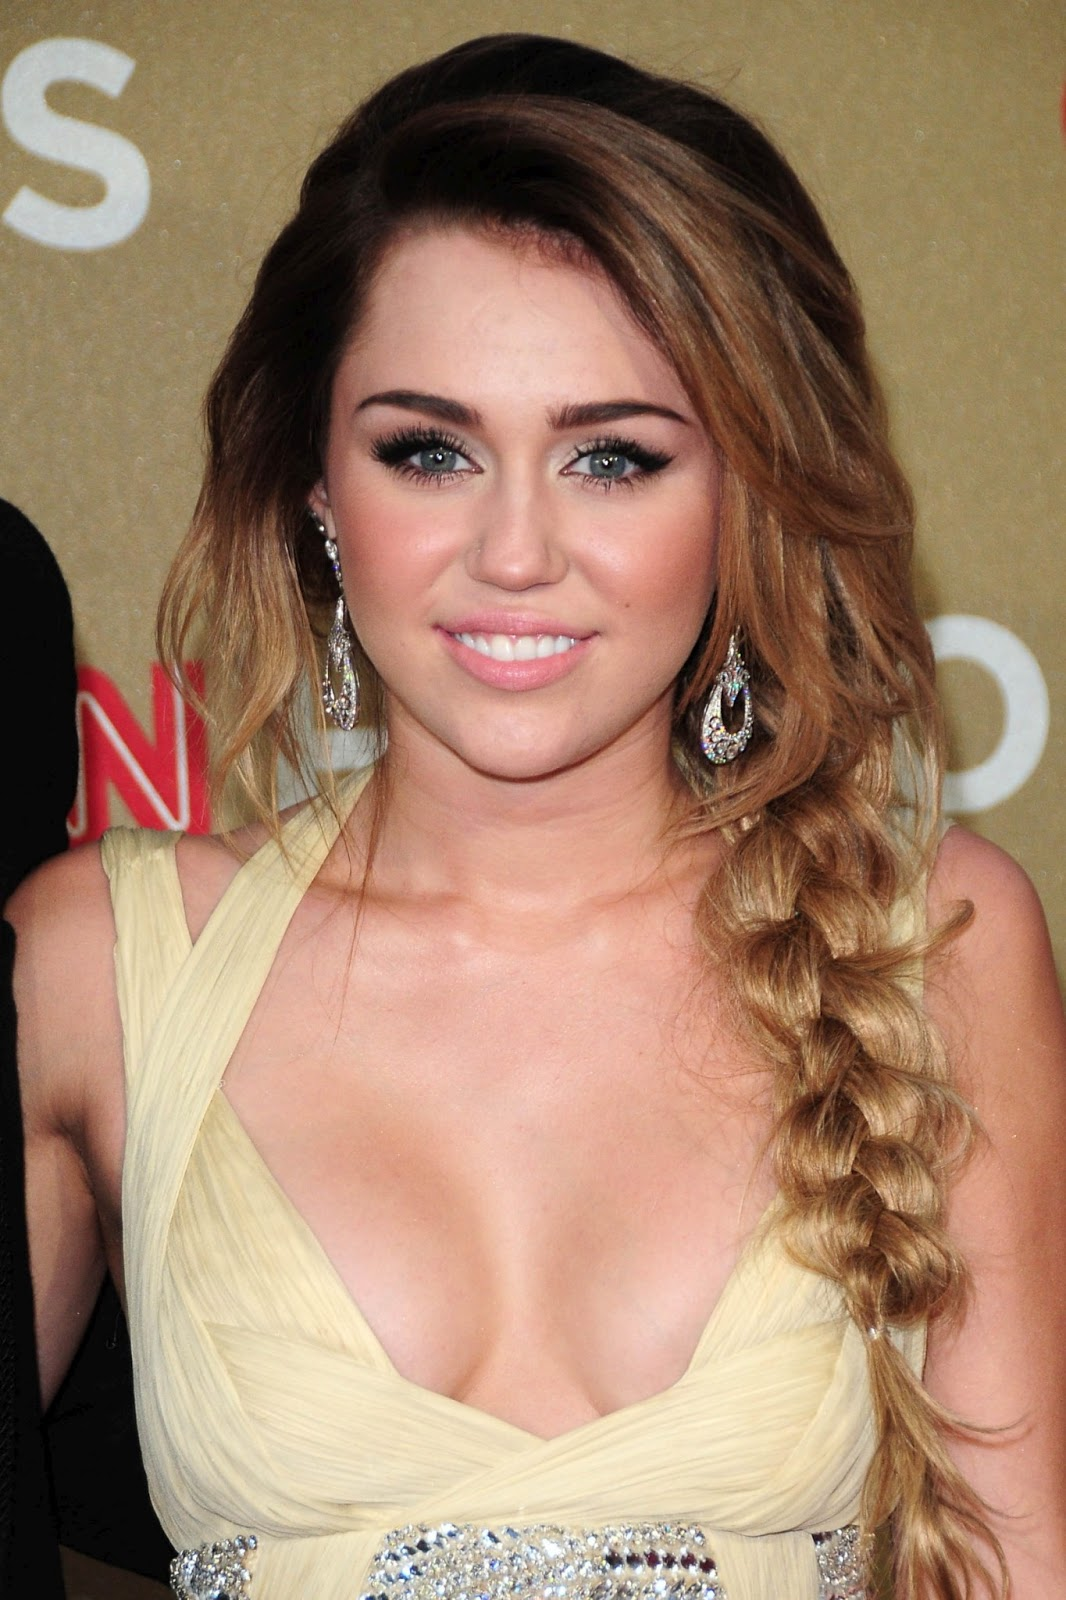 Miley Cyrus Miley Cyrus Breast Pics